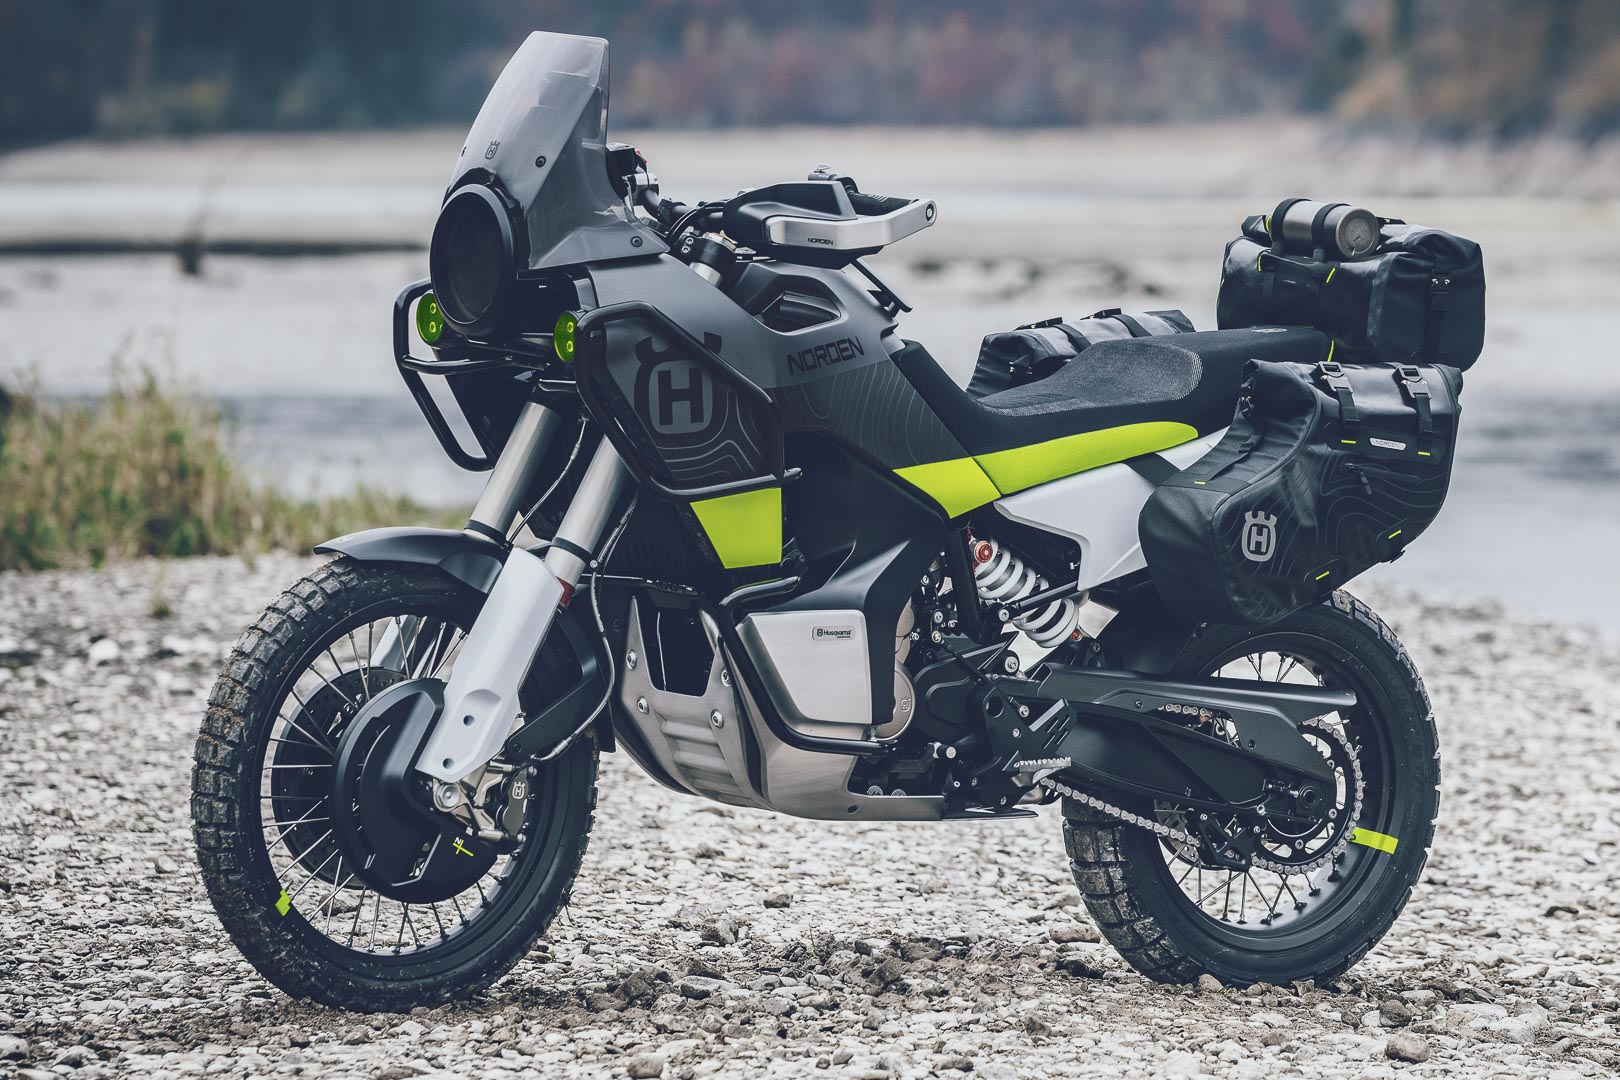 Husqvarna Norden 901 - Adventure Motorcycle